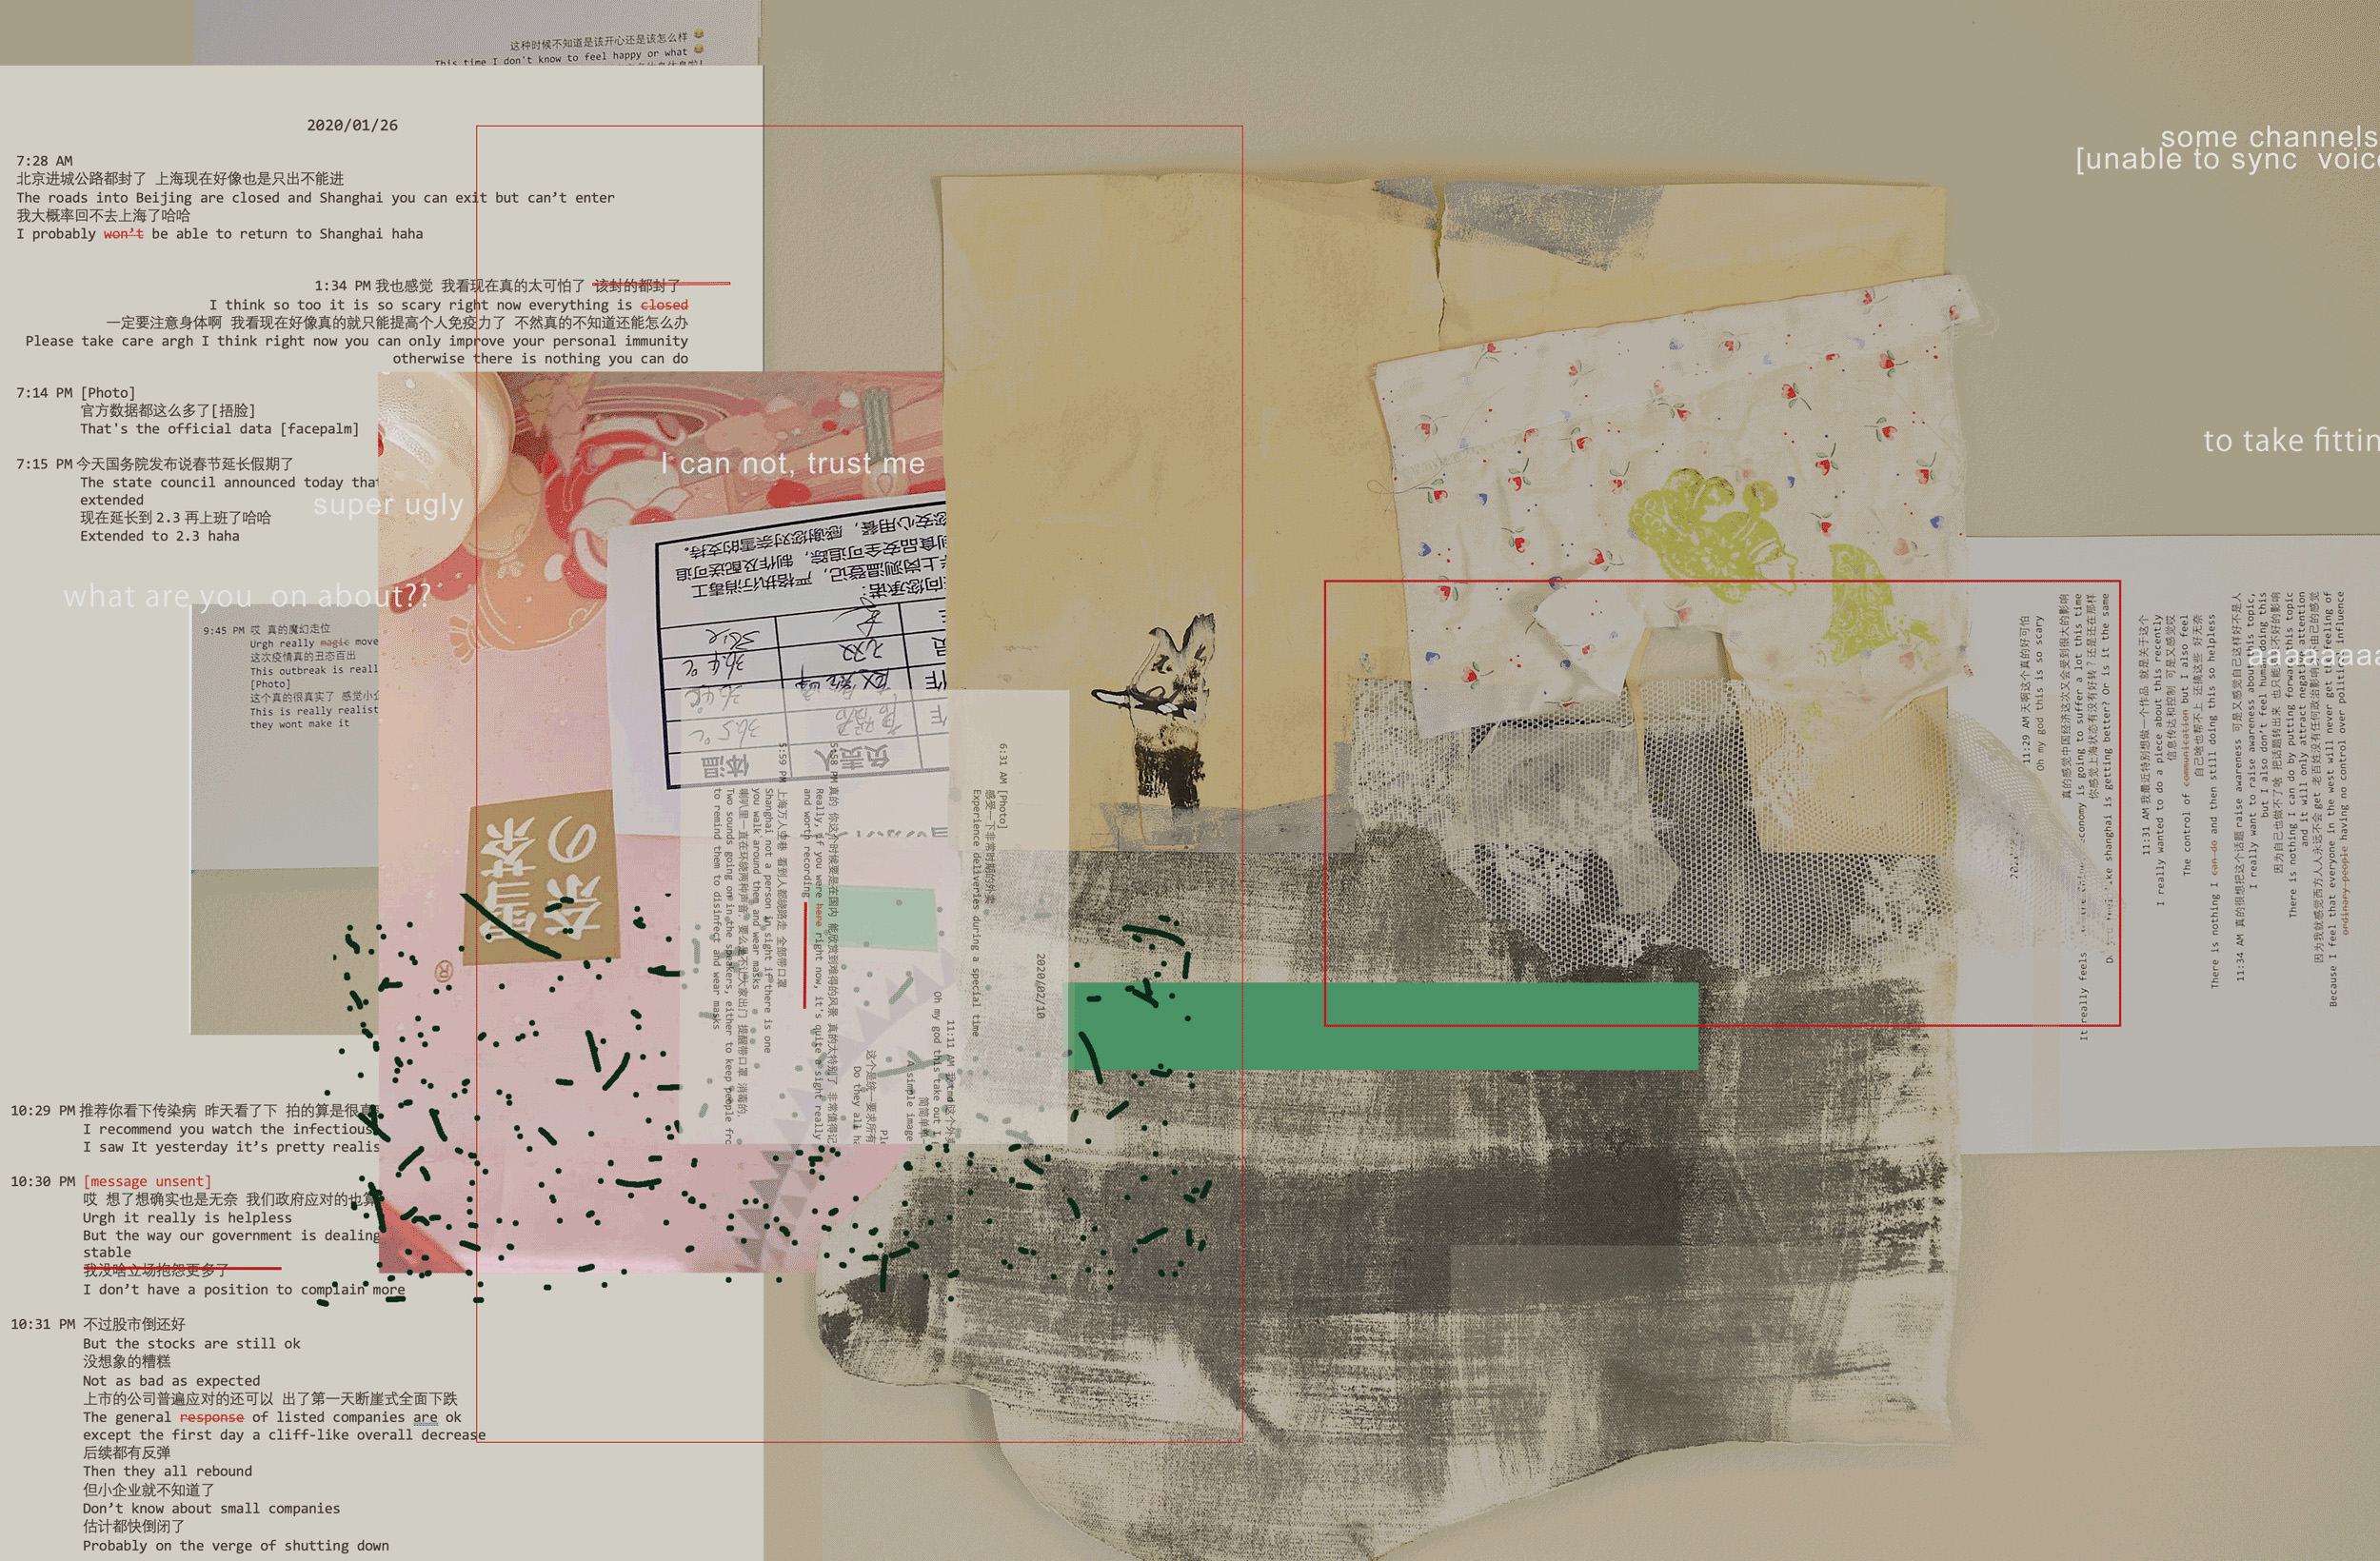 This is a color still image from an animated GIF by Tianyi Sun. The image features various layered forms, textures, images, and texts. The colors range from beige, yellow, pink, grey, green and red. The textures resemble paper, fabric and other paper documents. Some of the text reads super ugly, what are you on about?? and I can not, trust me.